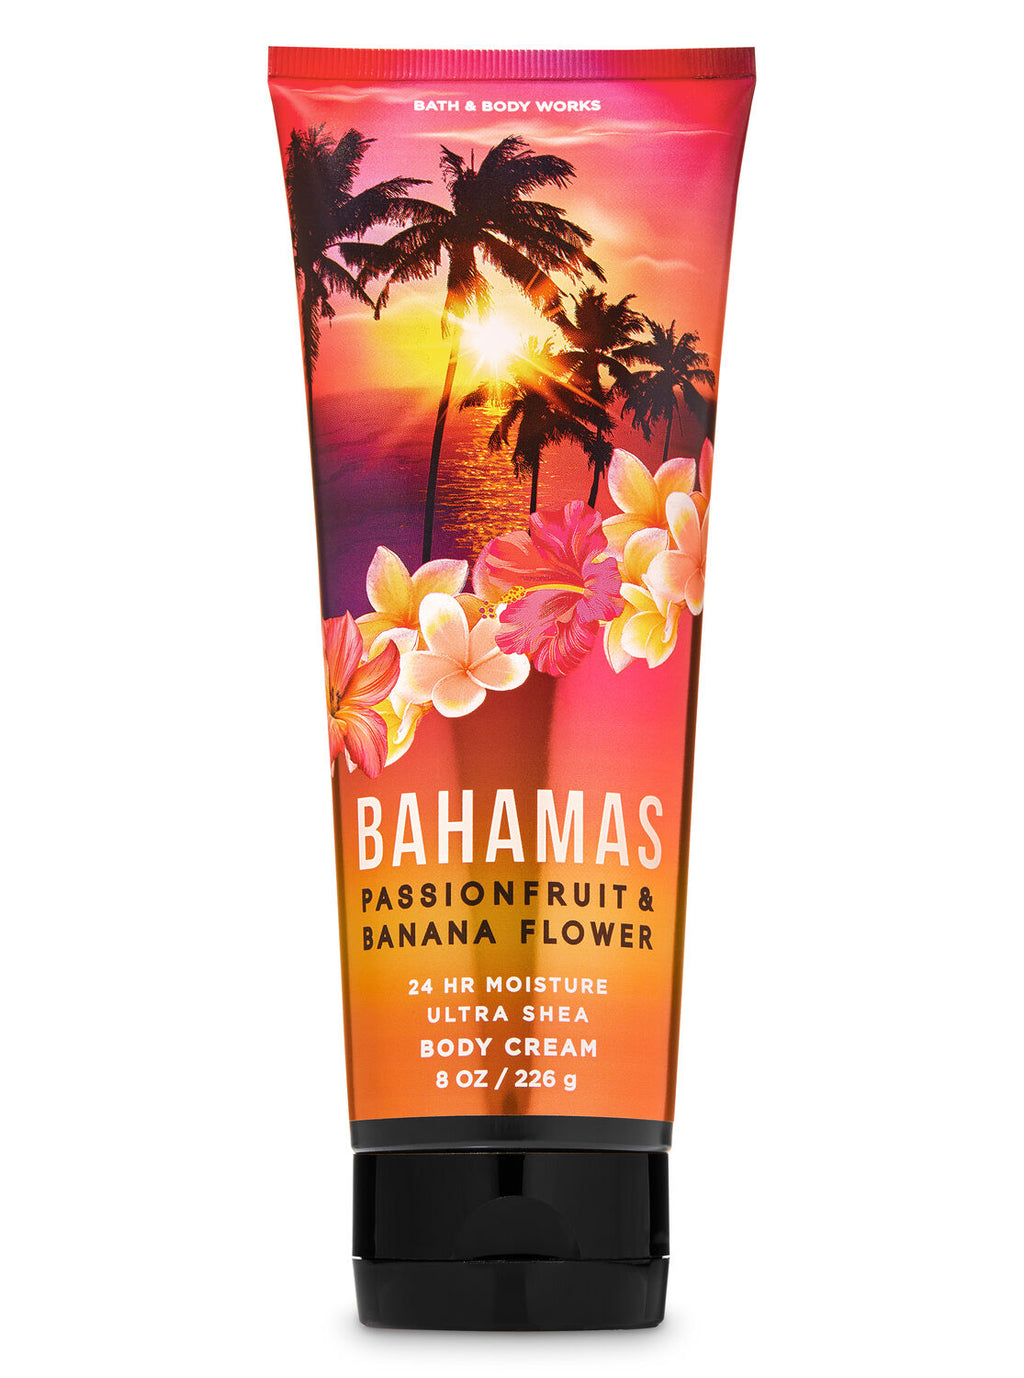 Bahamas Passionfruit & Banana Flower Ultra Shea Body Cream